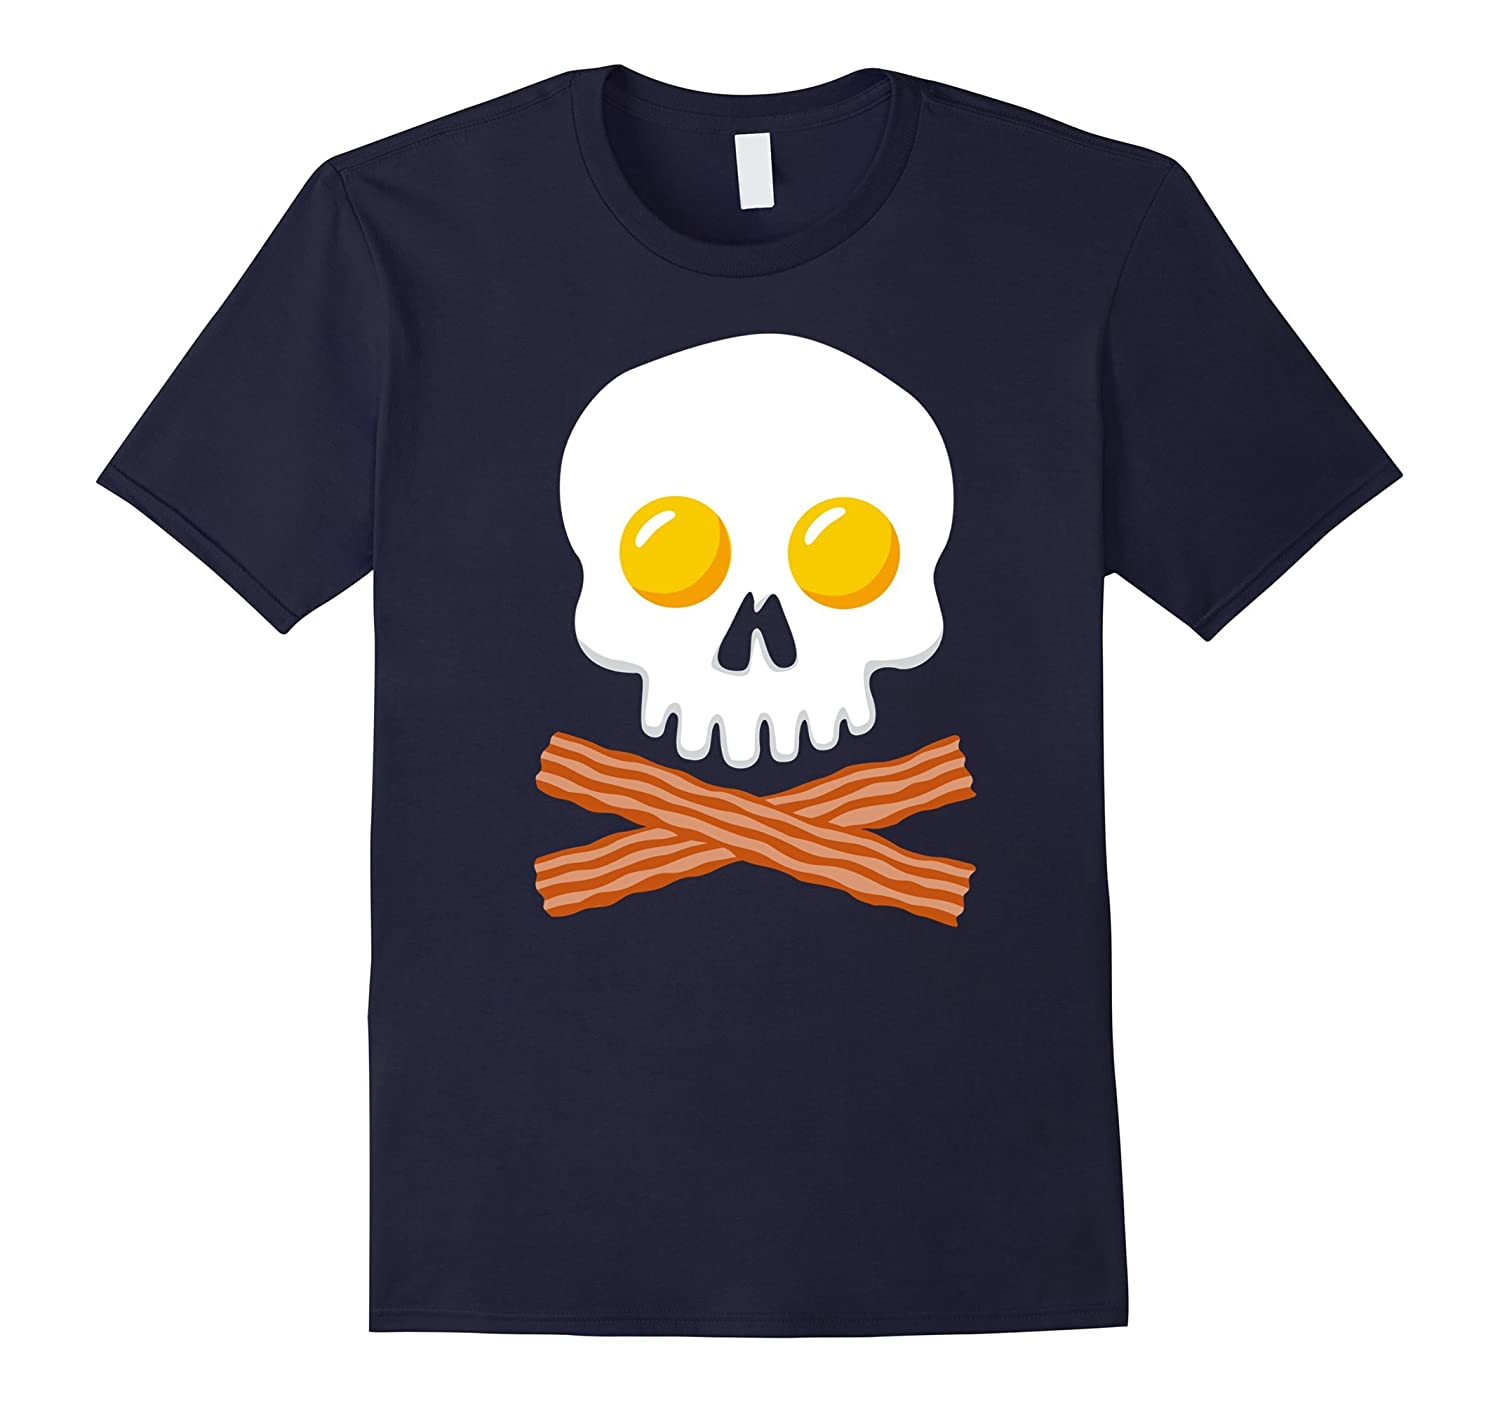 Breakfast Skull Shirt Egg and Bacon Skull Crossbones Tshirt-T-Shirt